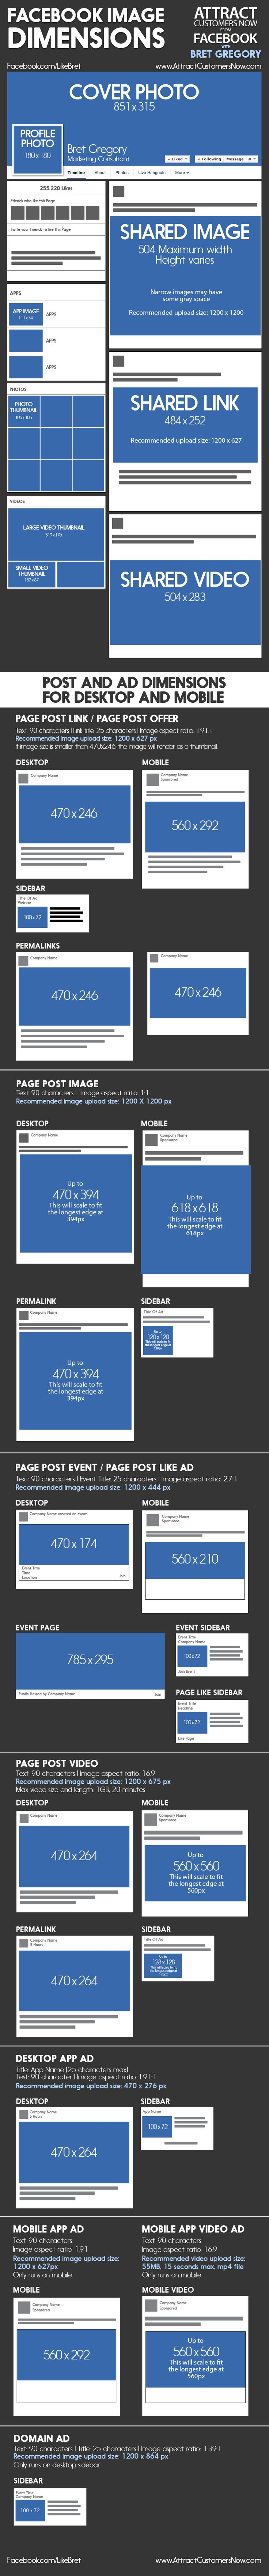 [Infographic] Facebook New Timeline Image Dimensions, Posts, Ads